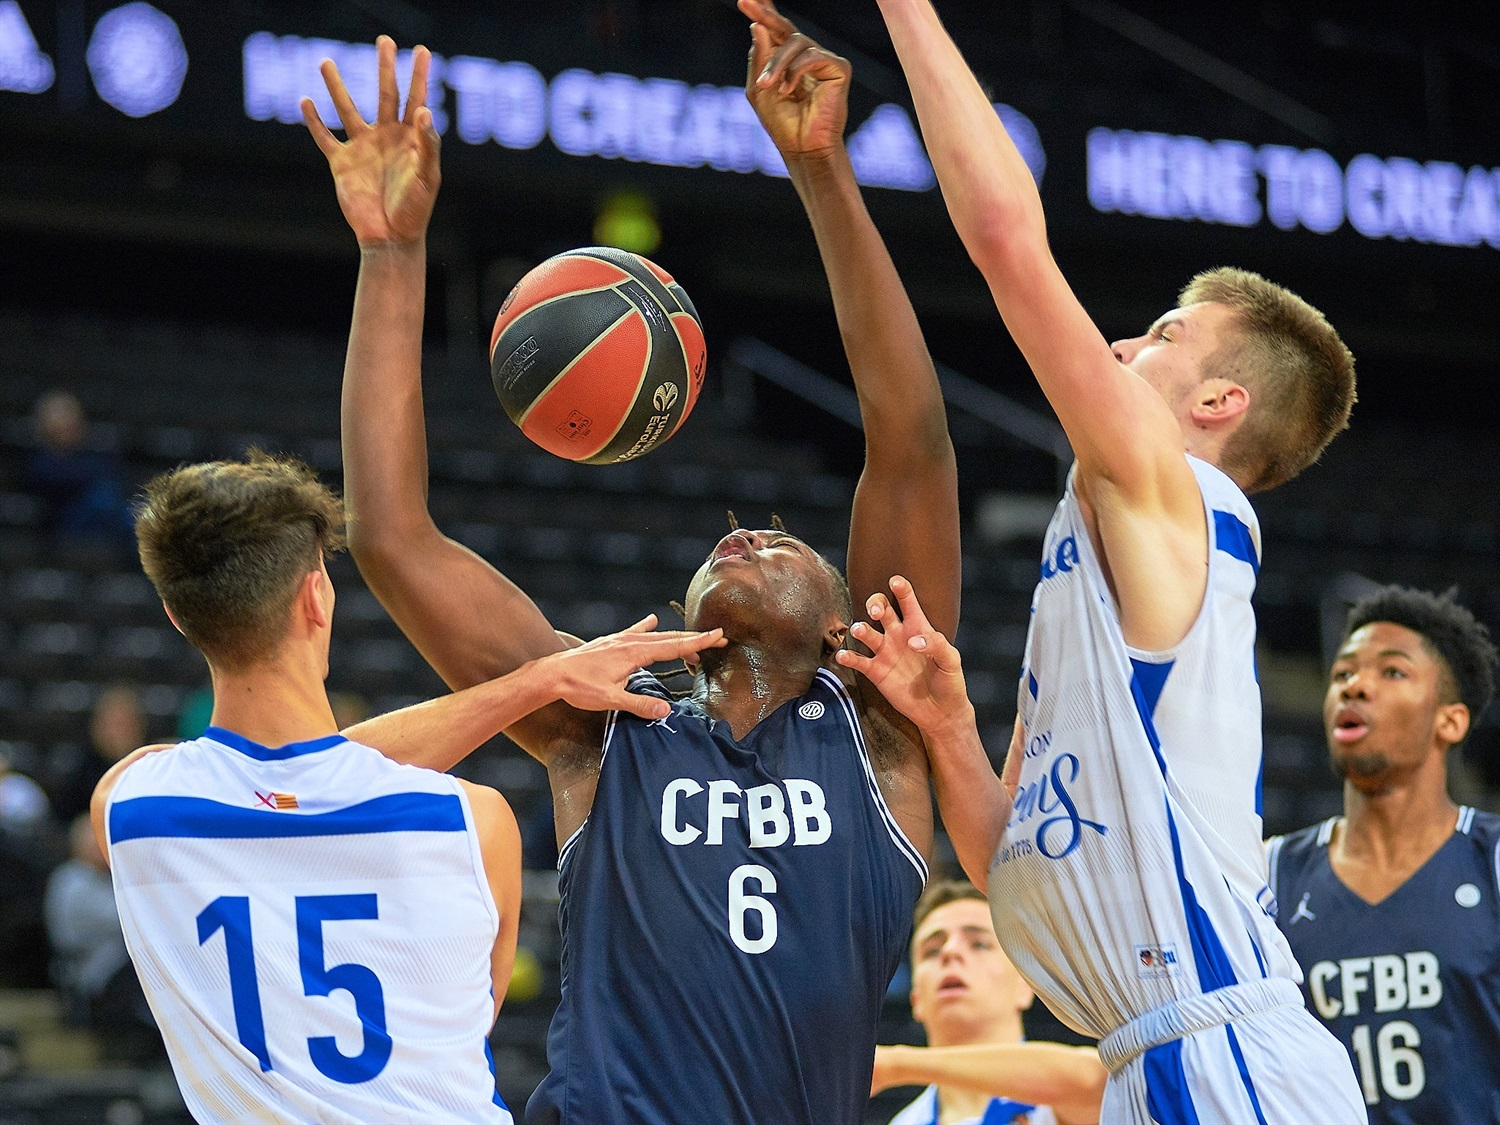 Yvan Ouedraogo - U18 CFBB Paris (photo Zalgiris) - JT18